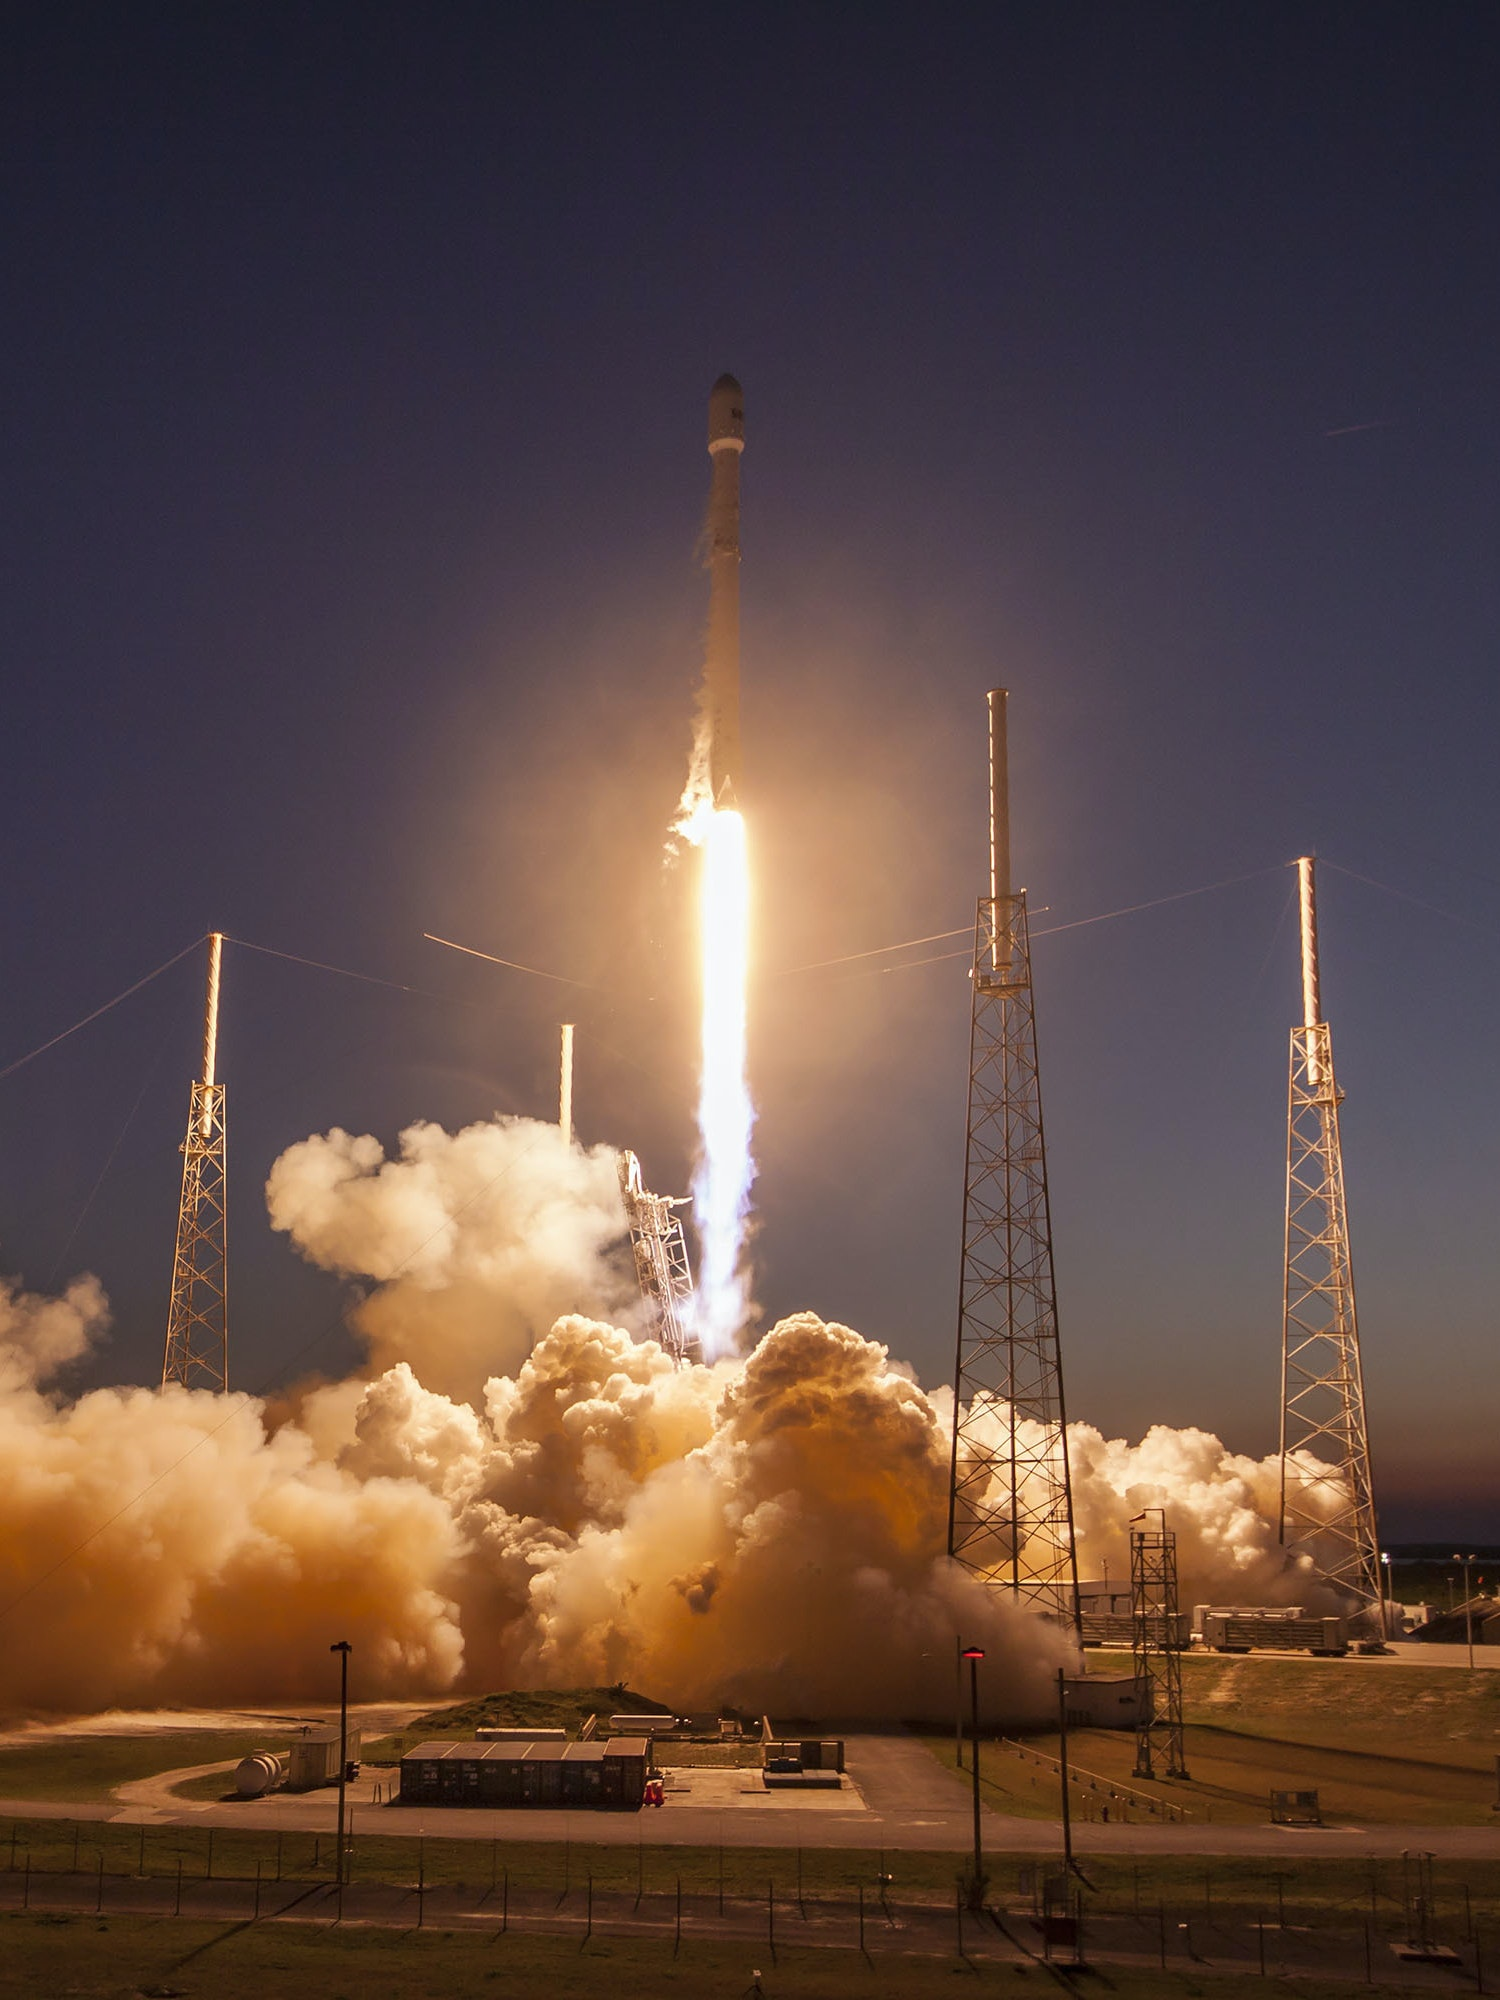 CAPE CANAVERAL, FL - MARCH 4: In this handout provided by the National Aeronautics and Space Administration (NASA), SpaceX's Falcon 9 rocket makes a successful launch with the SES-9 communications satellite on March 4, 2016 in Cape Canaveral, Florida. (Photo by NASA via Getty Images)